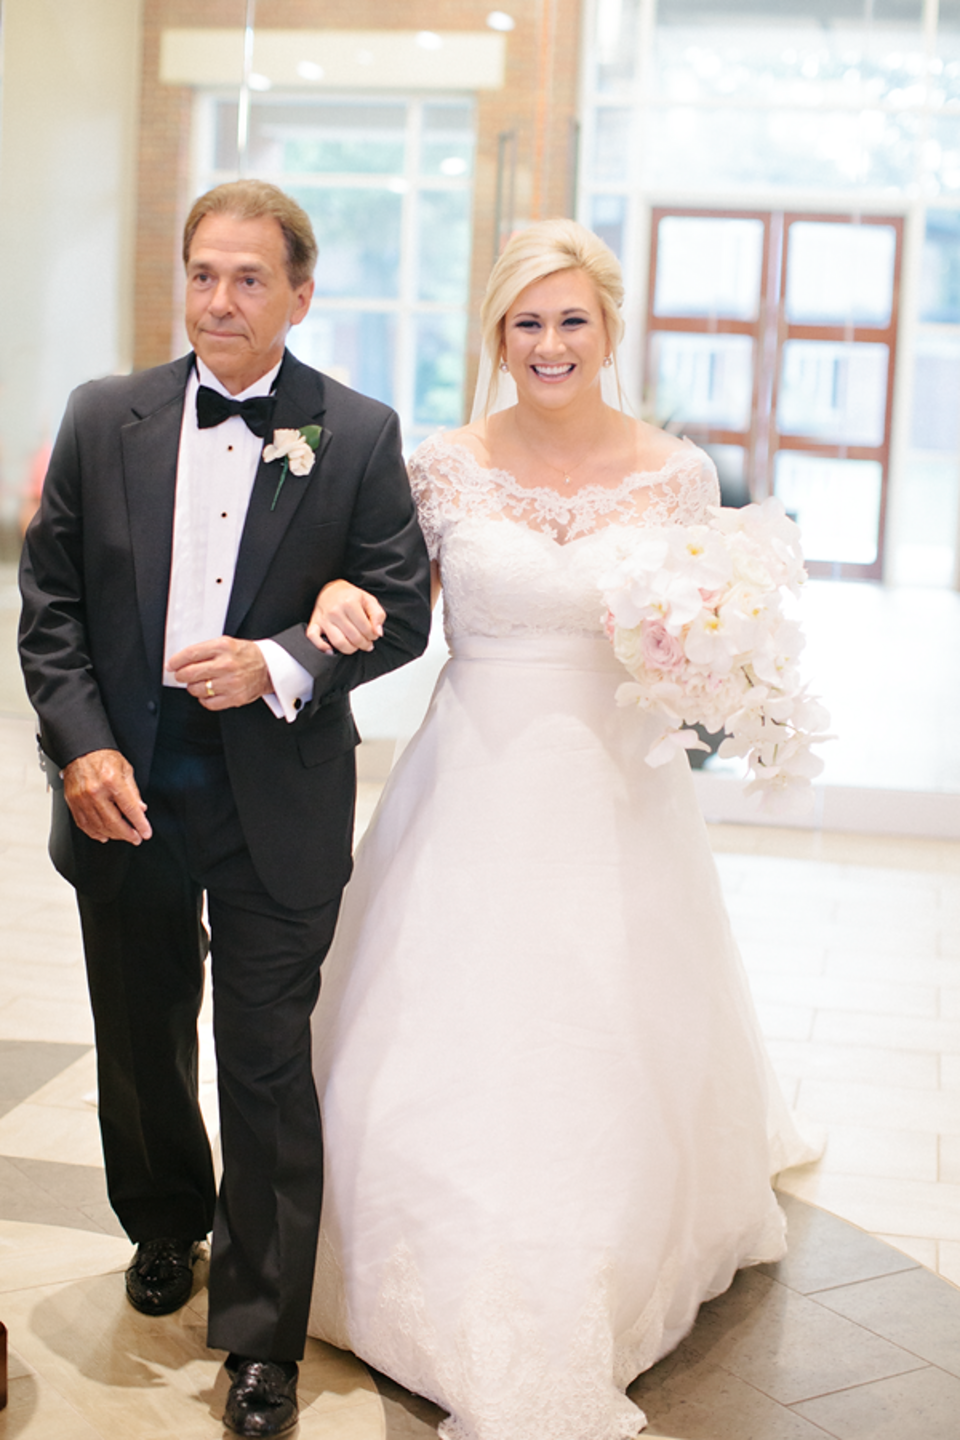 Watch the most amazing wedding video featuring Nick Saban ...